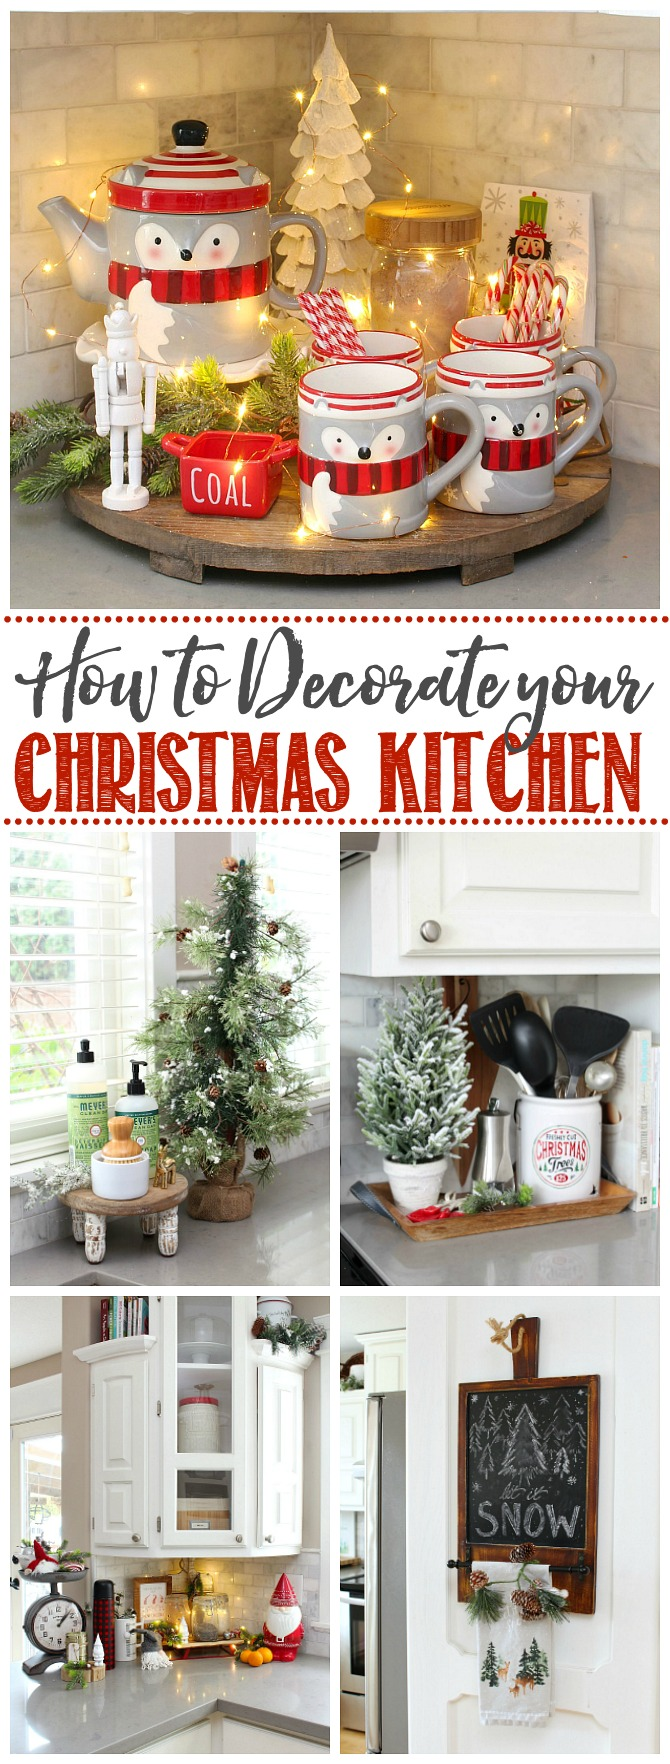 Collate of simple kitchen Christmas decor ideas.